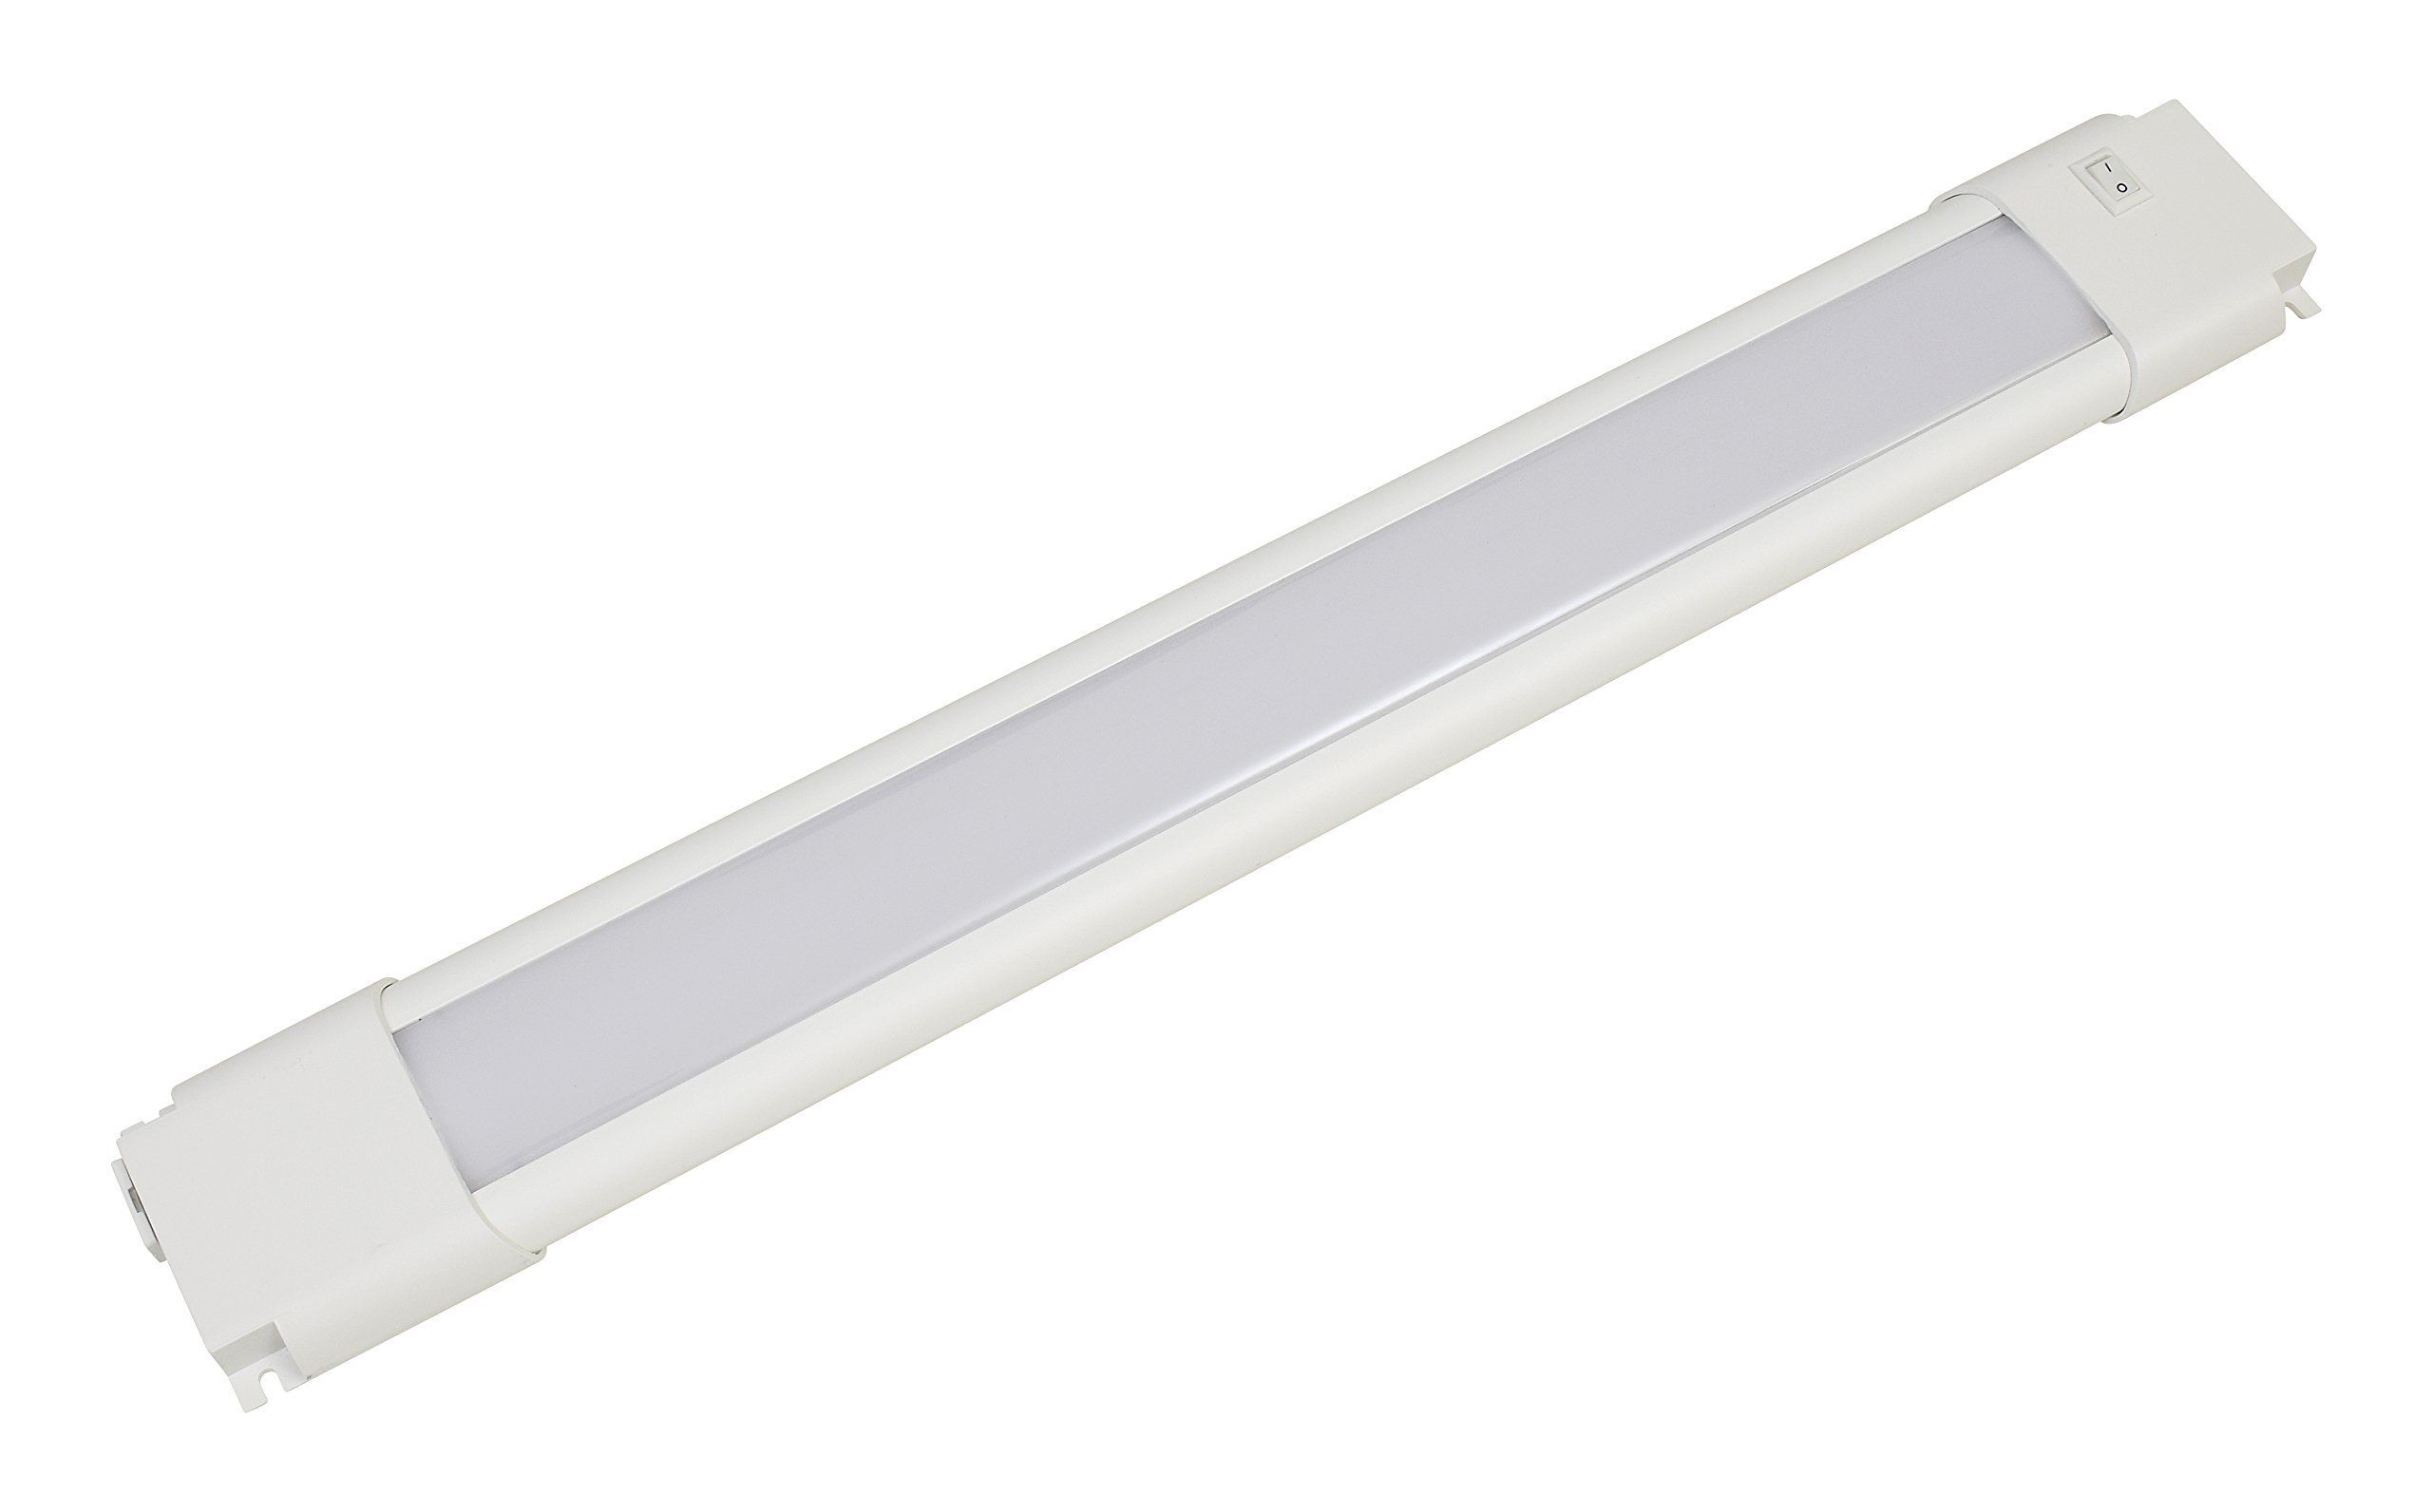 18 inch slim convertible LED under cabinet light fixture 8watts 450 lumens white light - 74345